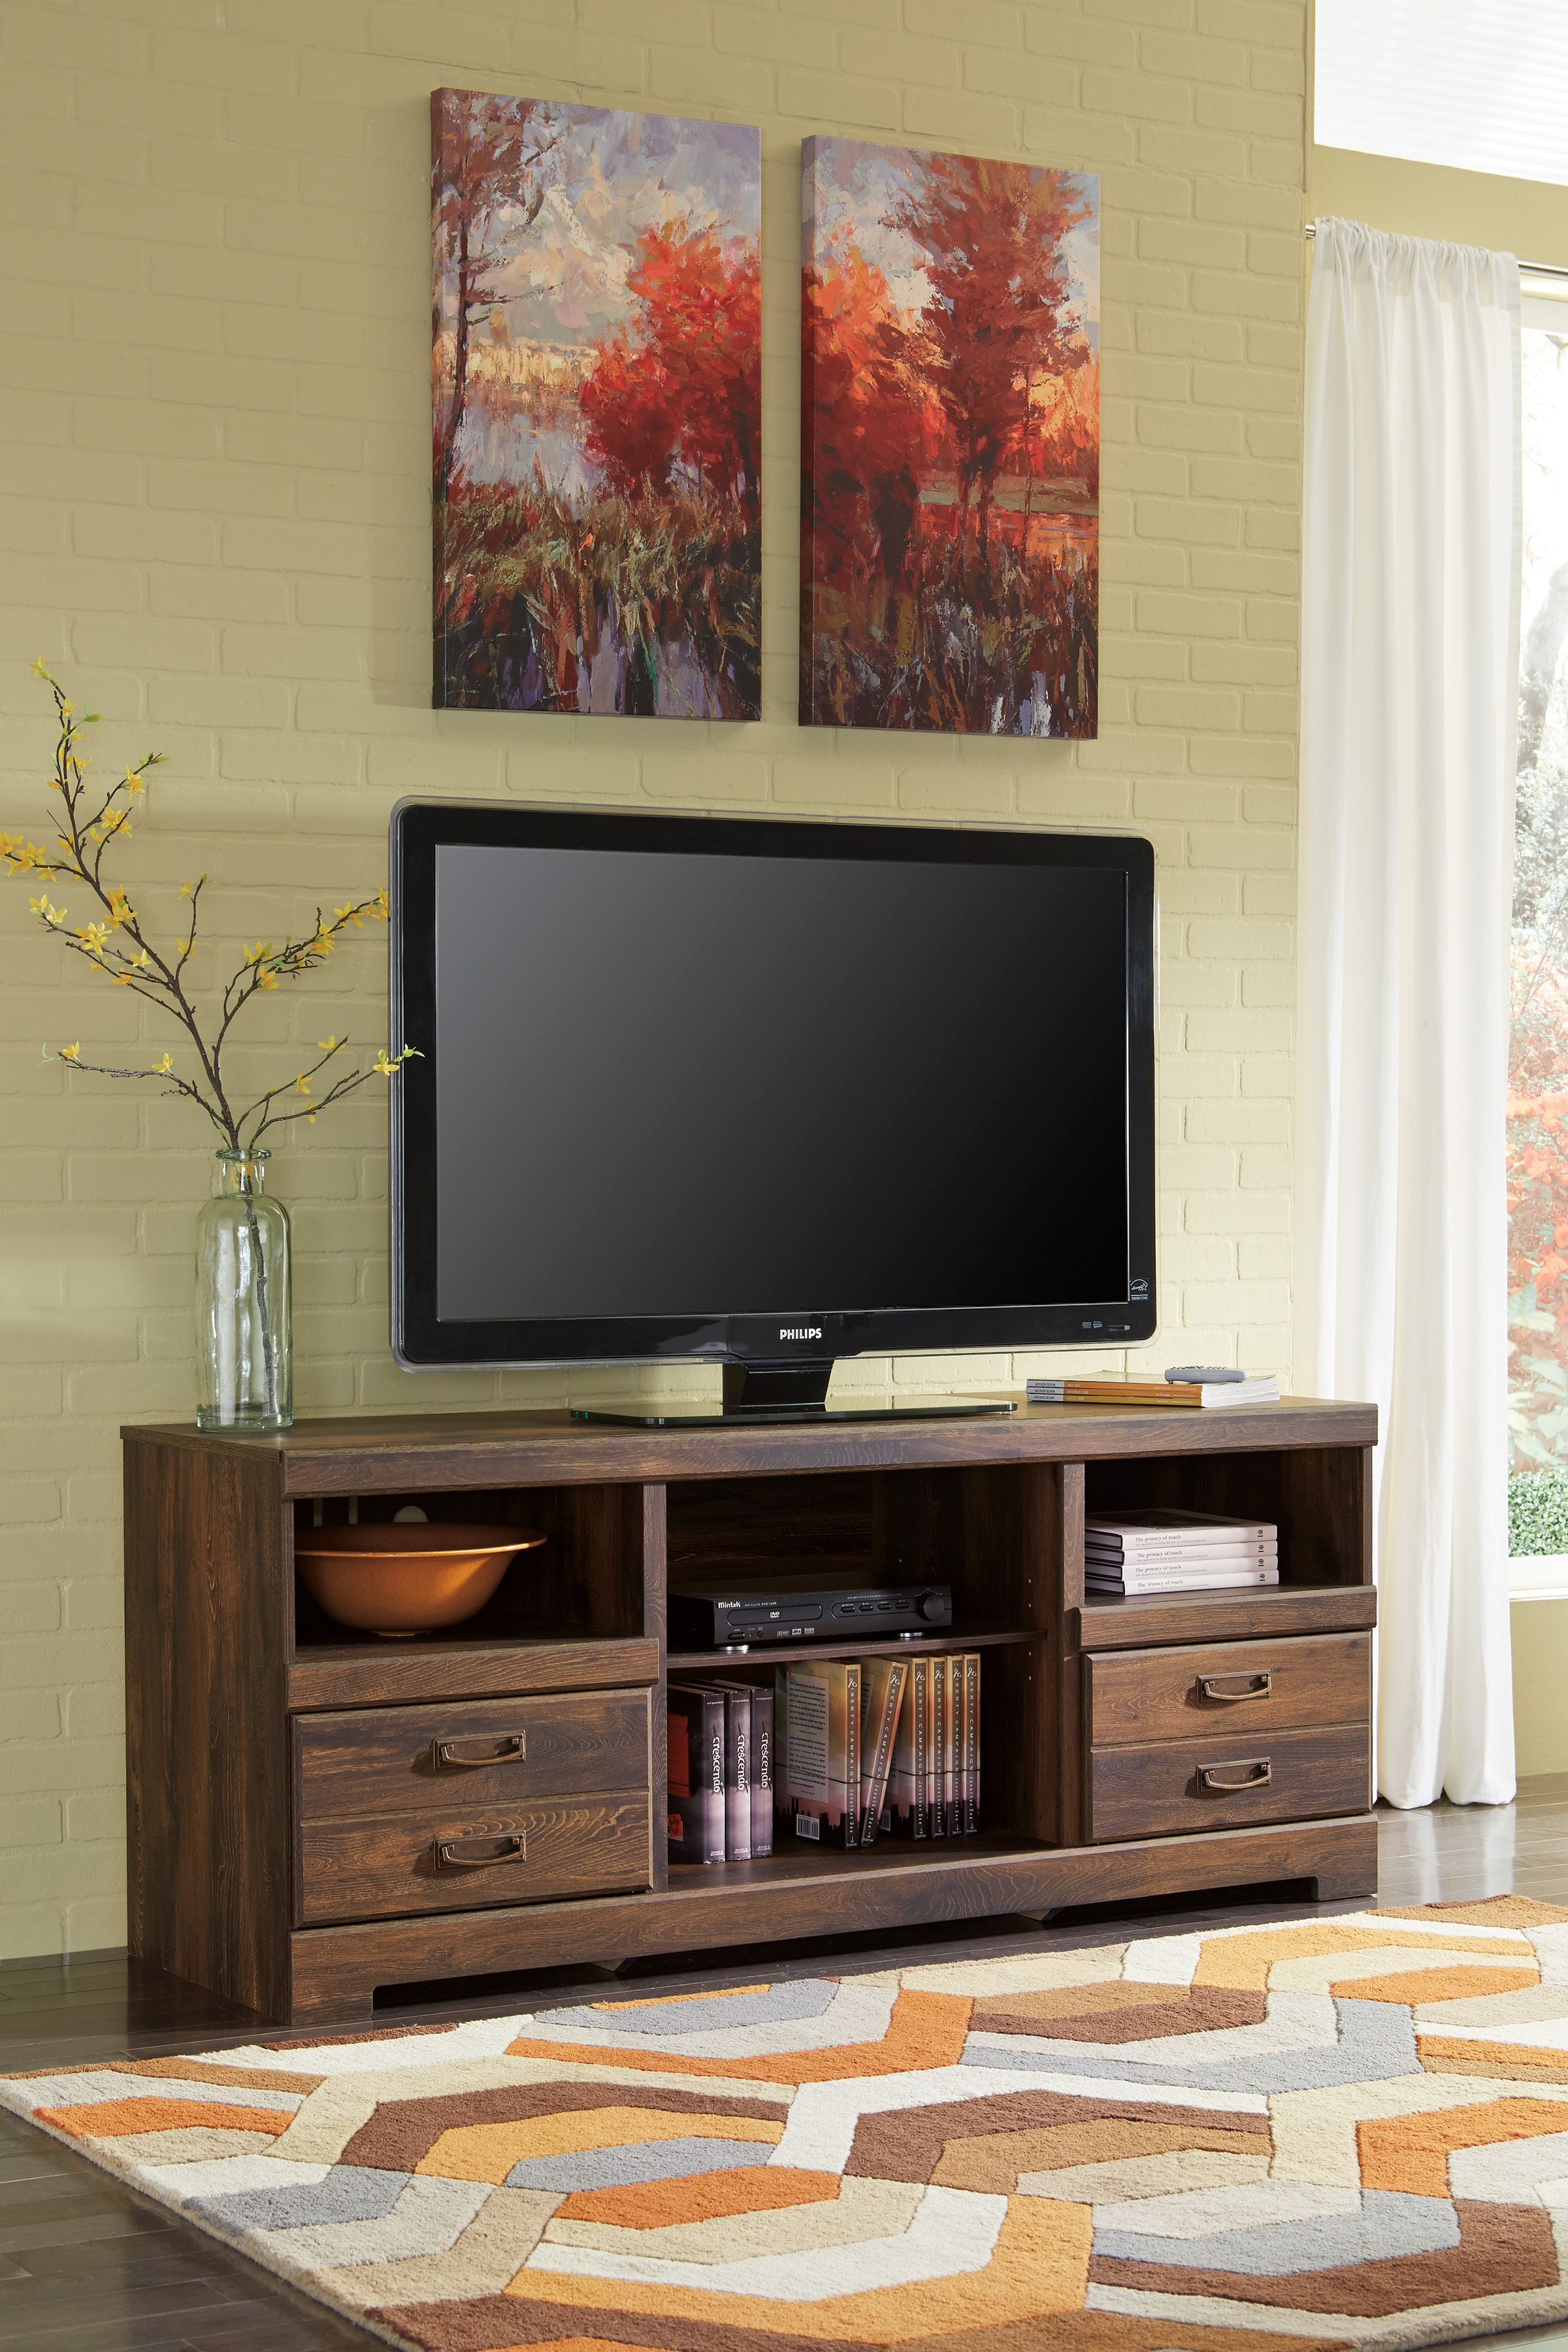 Shop For Signature Design By Ashley LG TV Stand W/Fireplace Option, And  Other Accessories Entertainment Centers At Garnand Fine Furniture In Garden  City, ...